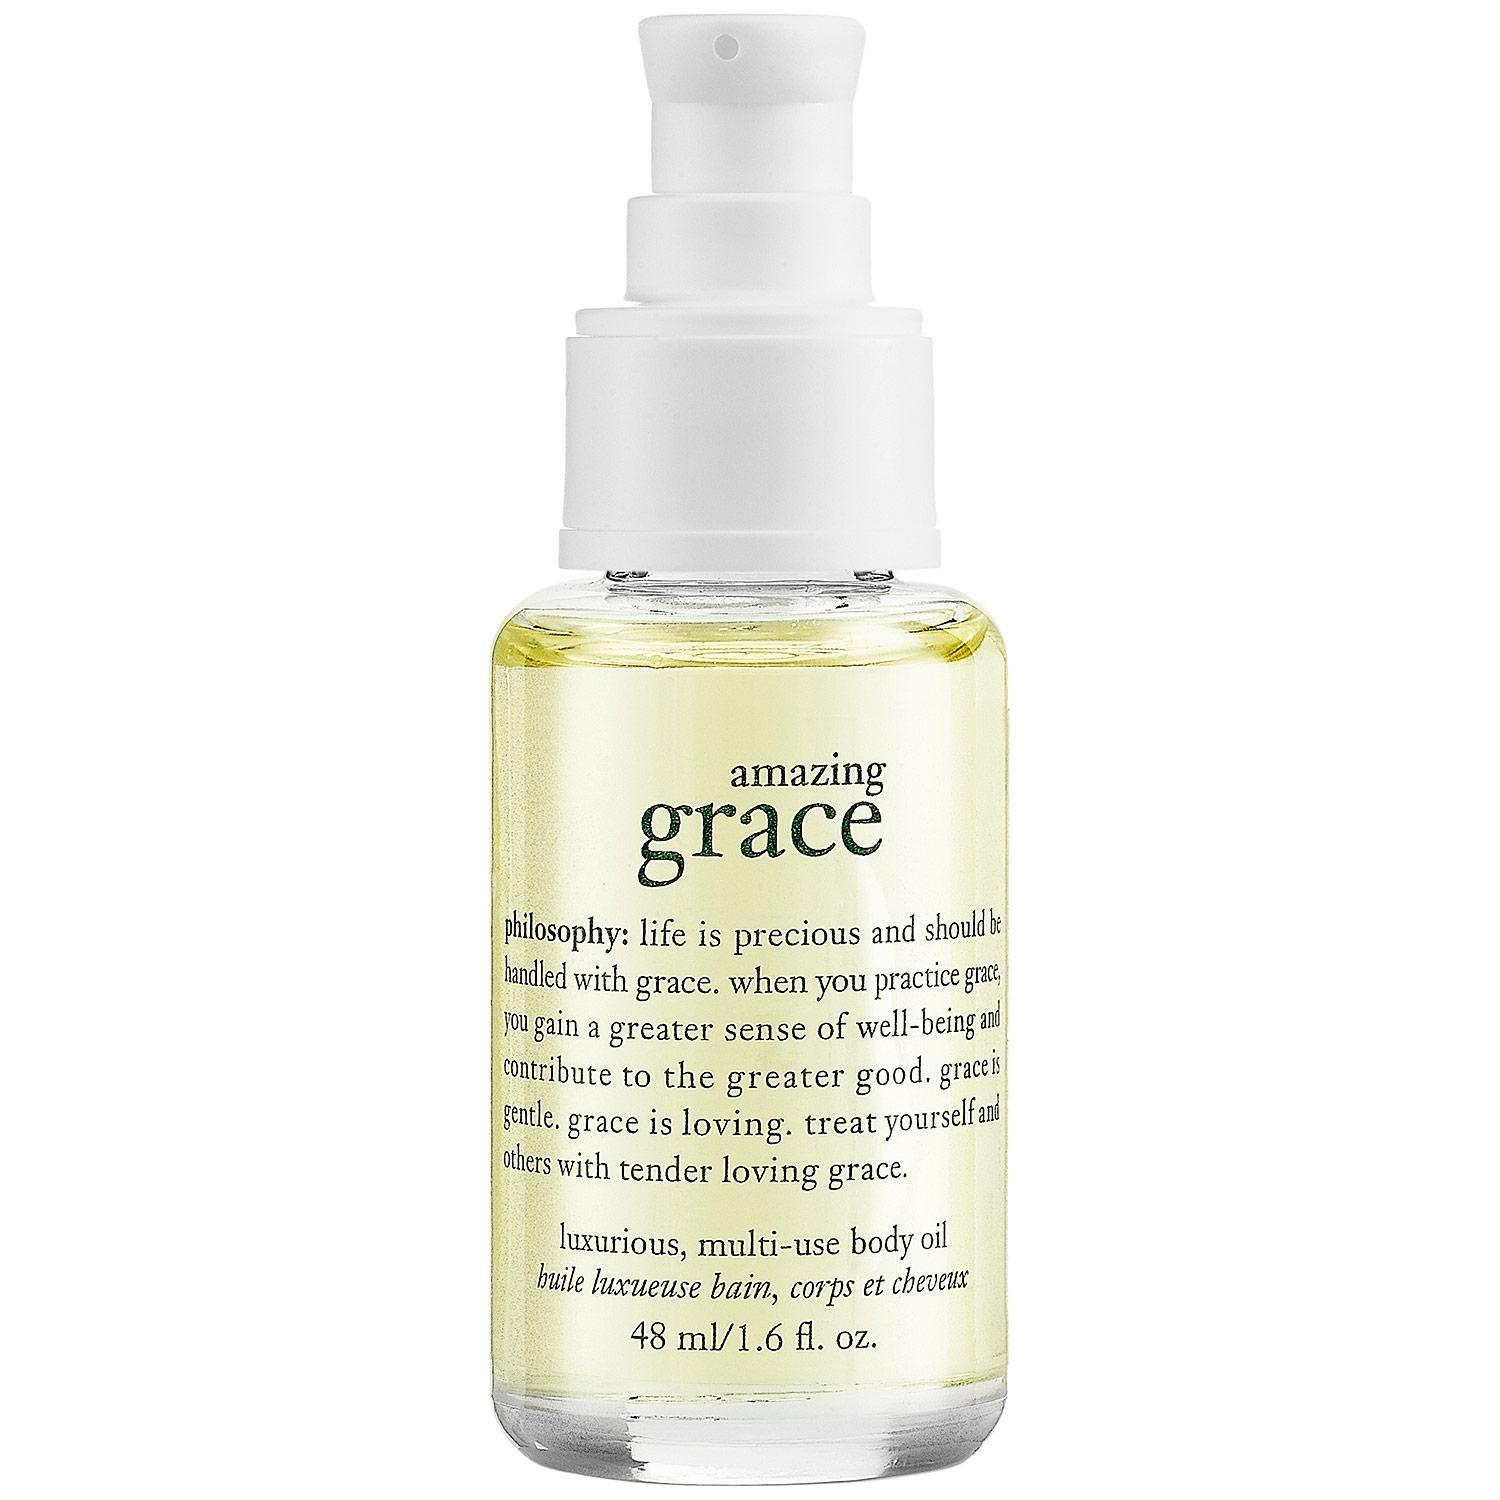 Amazing Grace Luxurious Multi-Use Body Oil